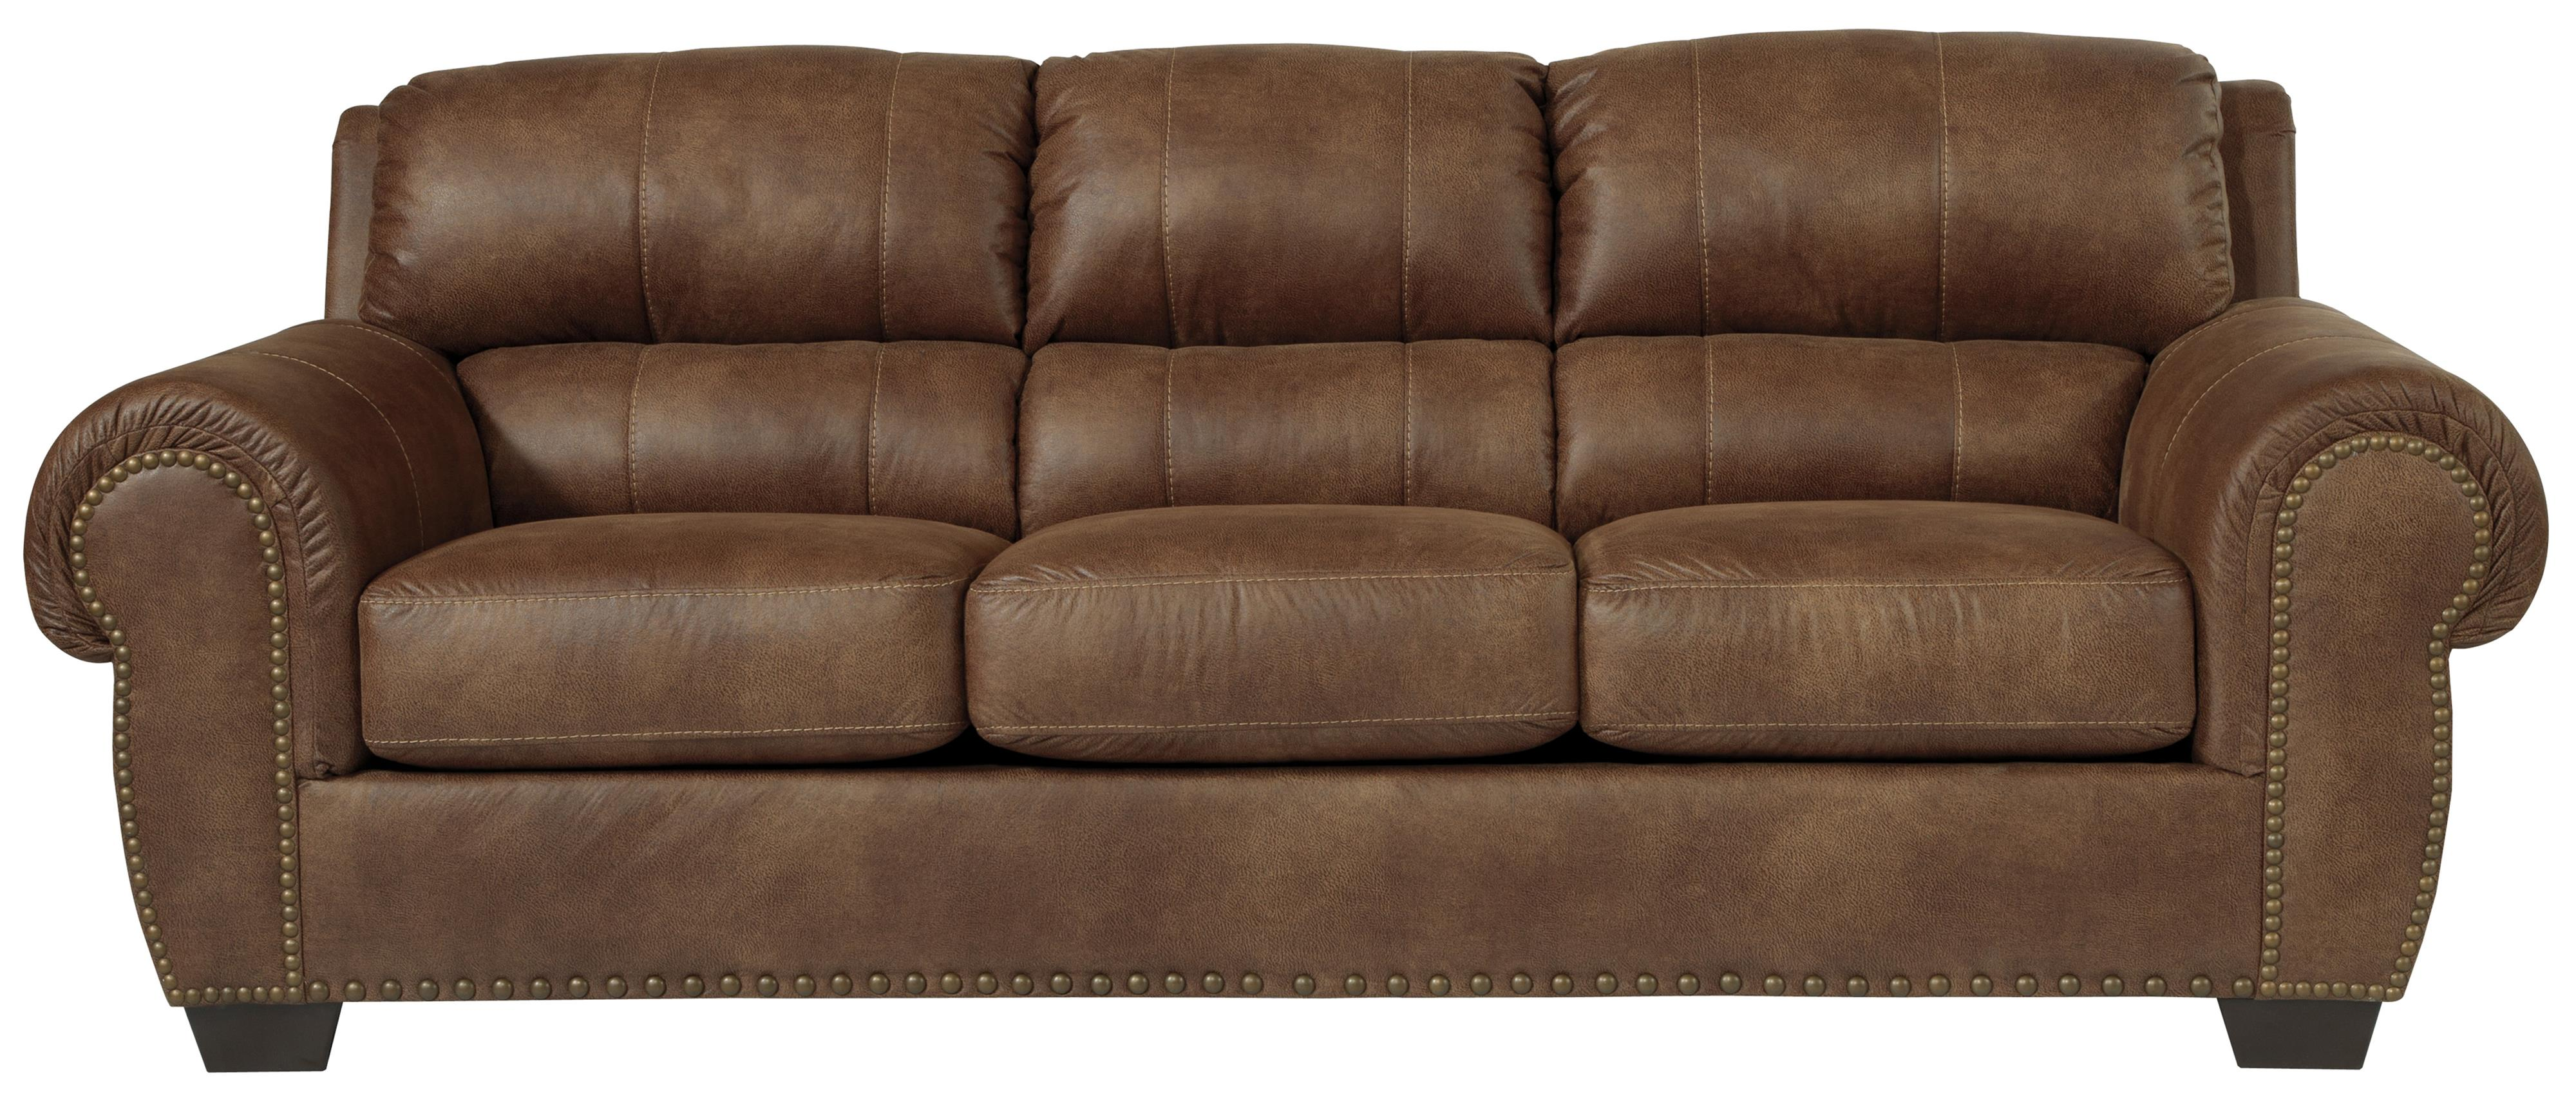 Benchcraft Burnsville Sofa - Item Number: 9720638